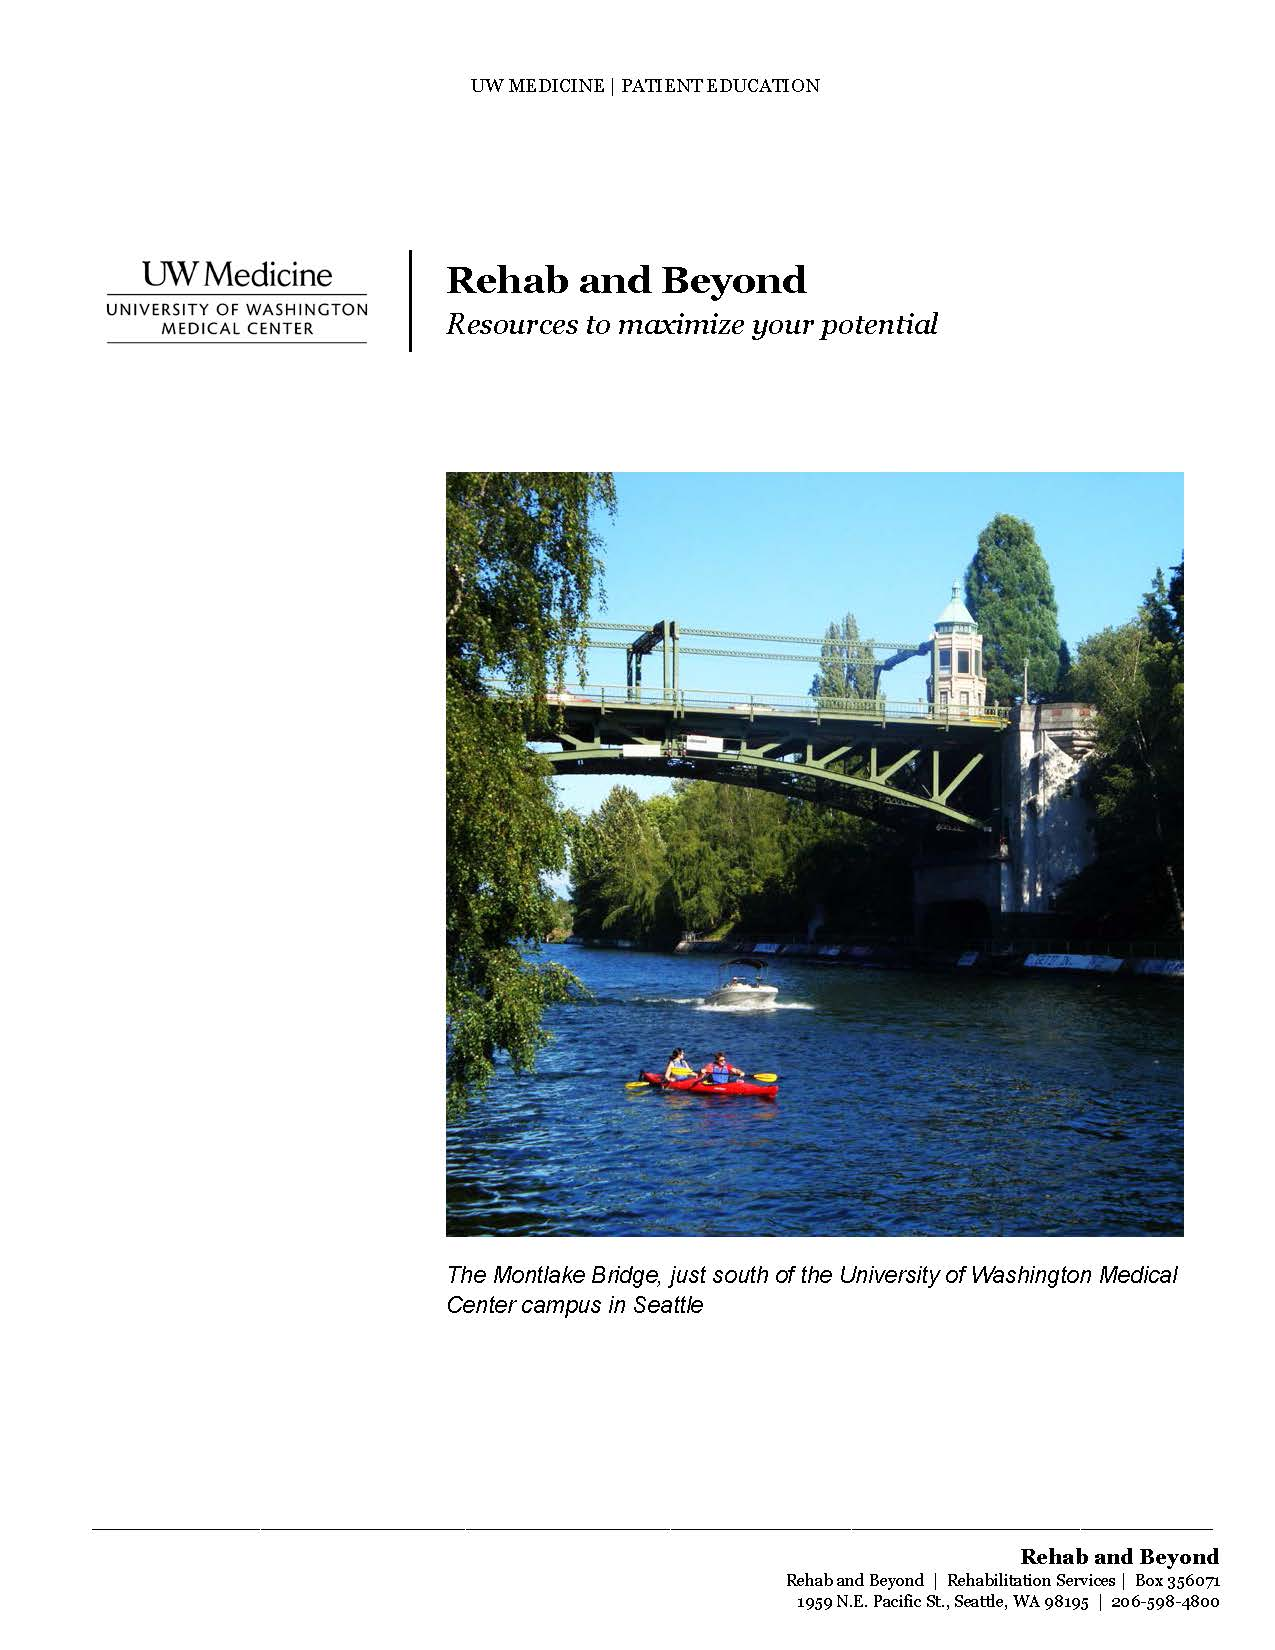 The cover of the Rehab and Beyond Manual